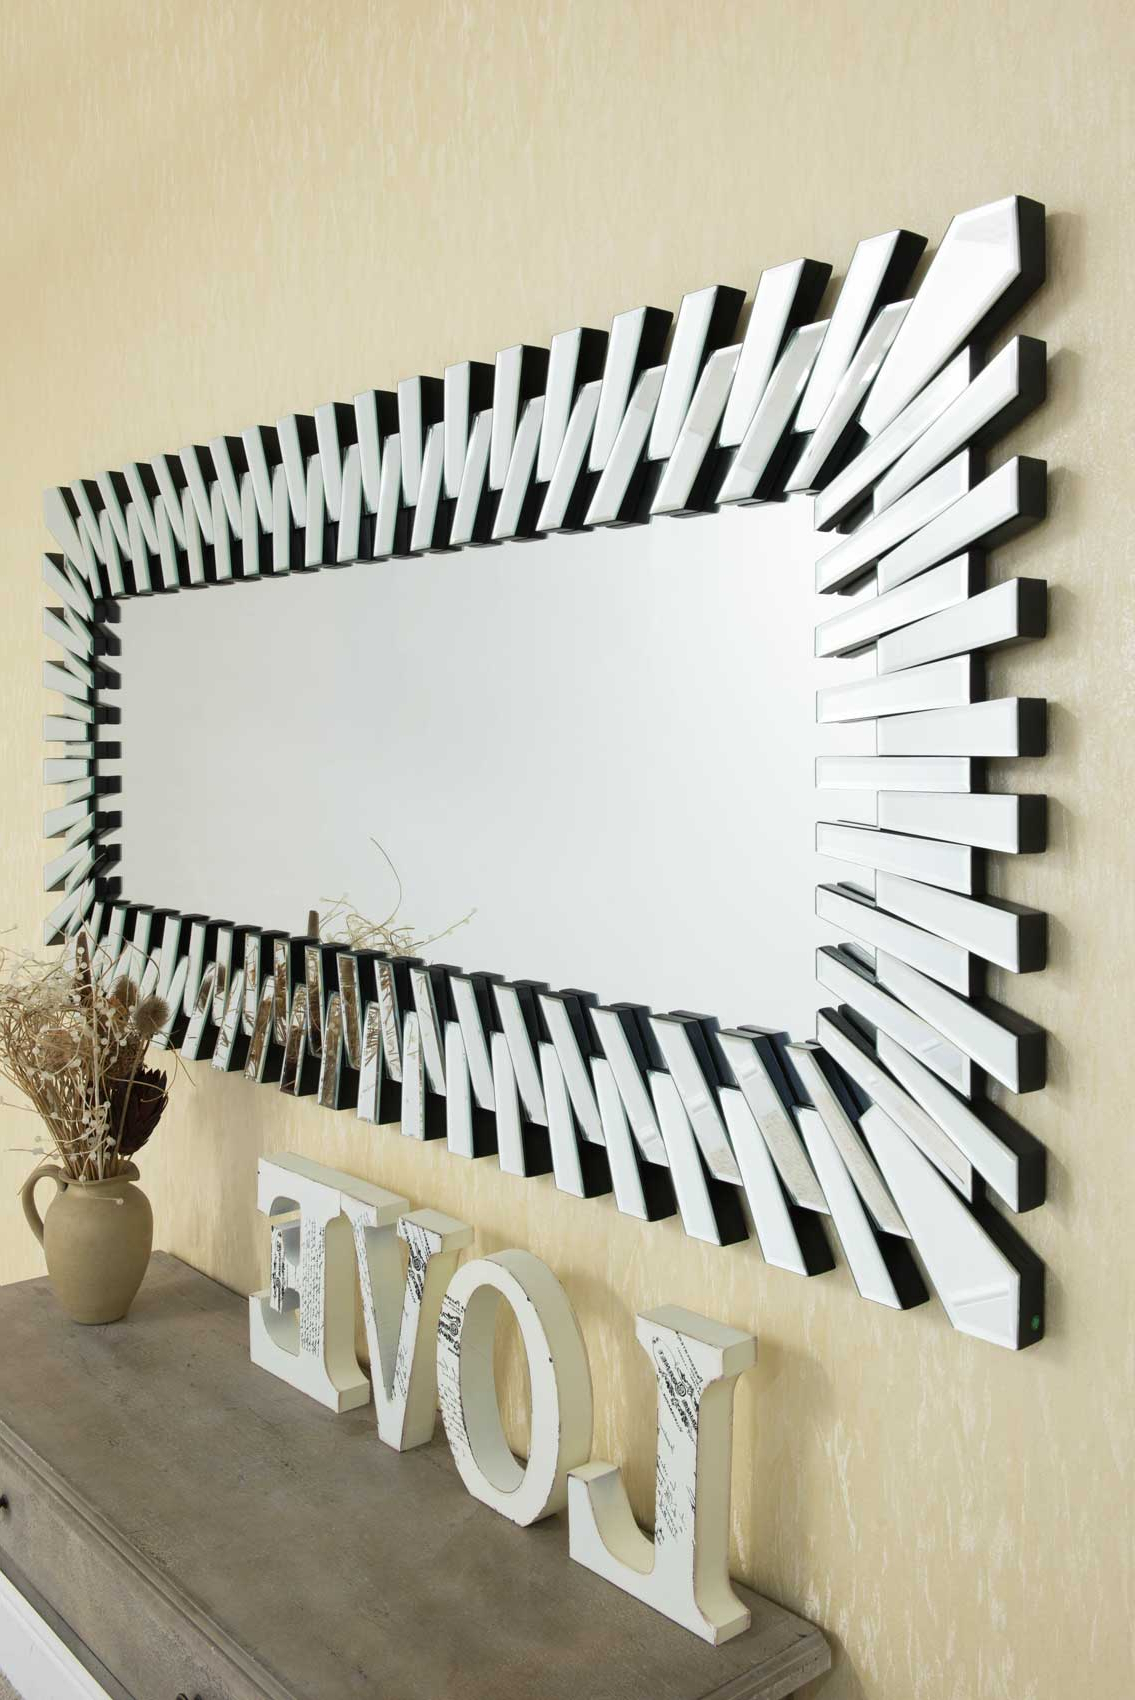 Fashionable Large Modern Wall Mirrors Regarding Details About Extra Large Modern Unique 3D Sunburst All Glass Venetian Rectangular Wall Mirror (View 12 of 20)